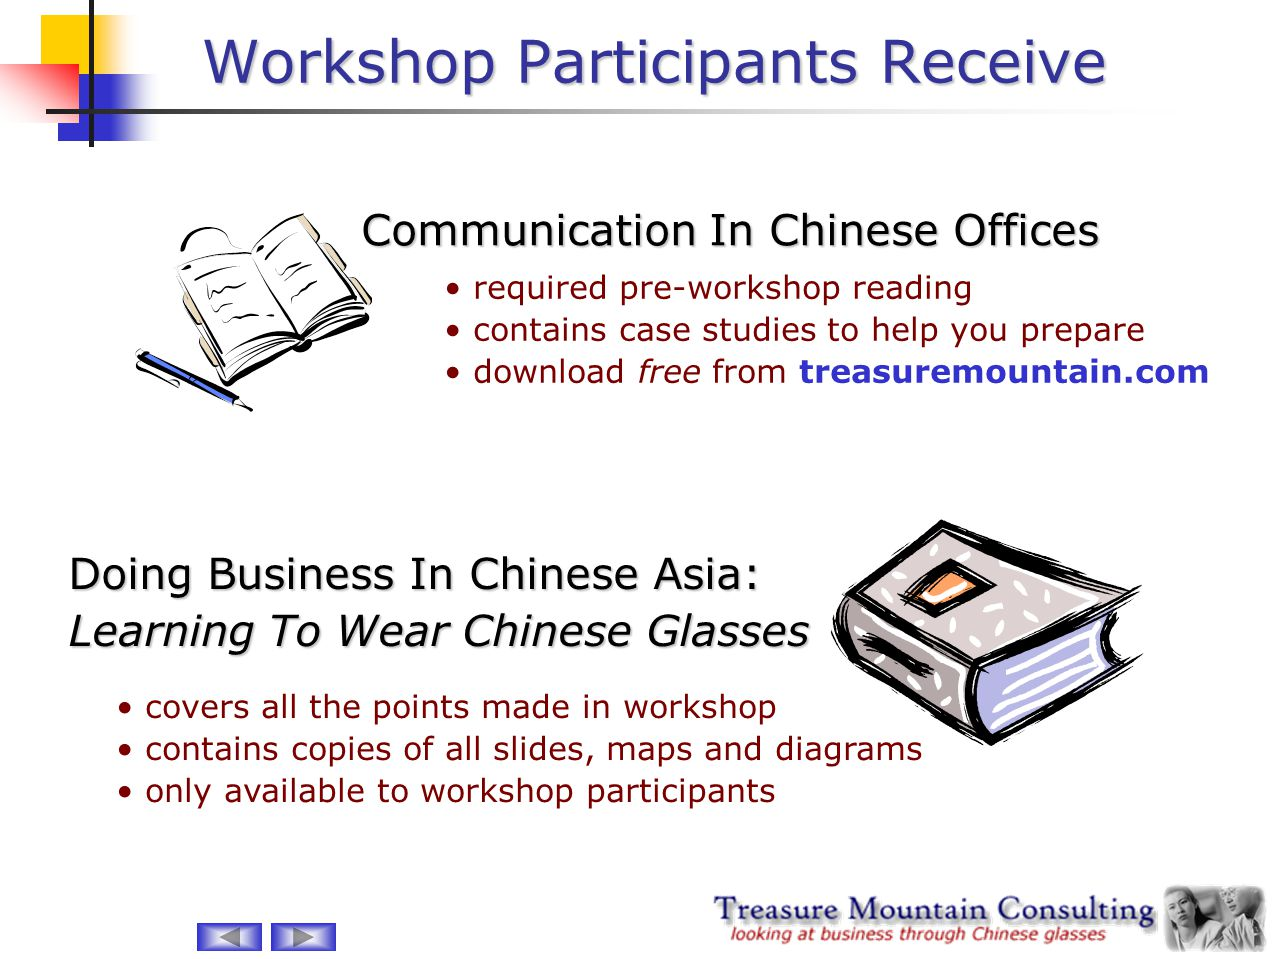 Workshop Participants Receive Communication In Chinese Offices Doing Business In Chinese Asia: Learning To Wear Chinese Glasses required pre-workshop